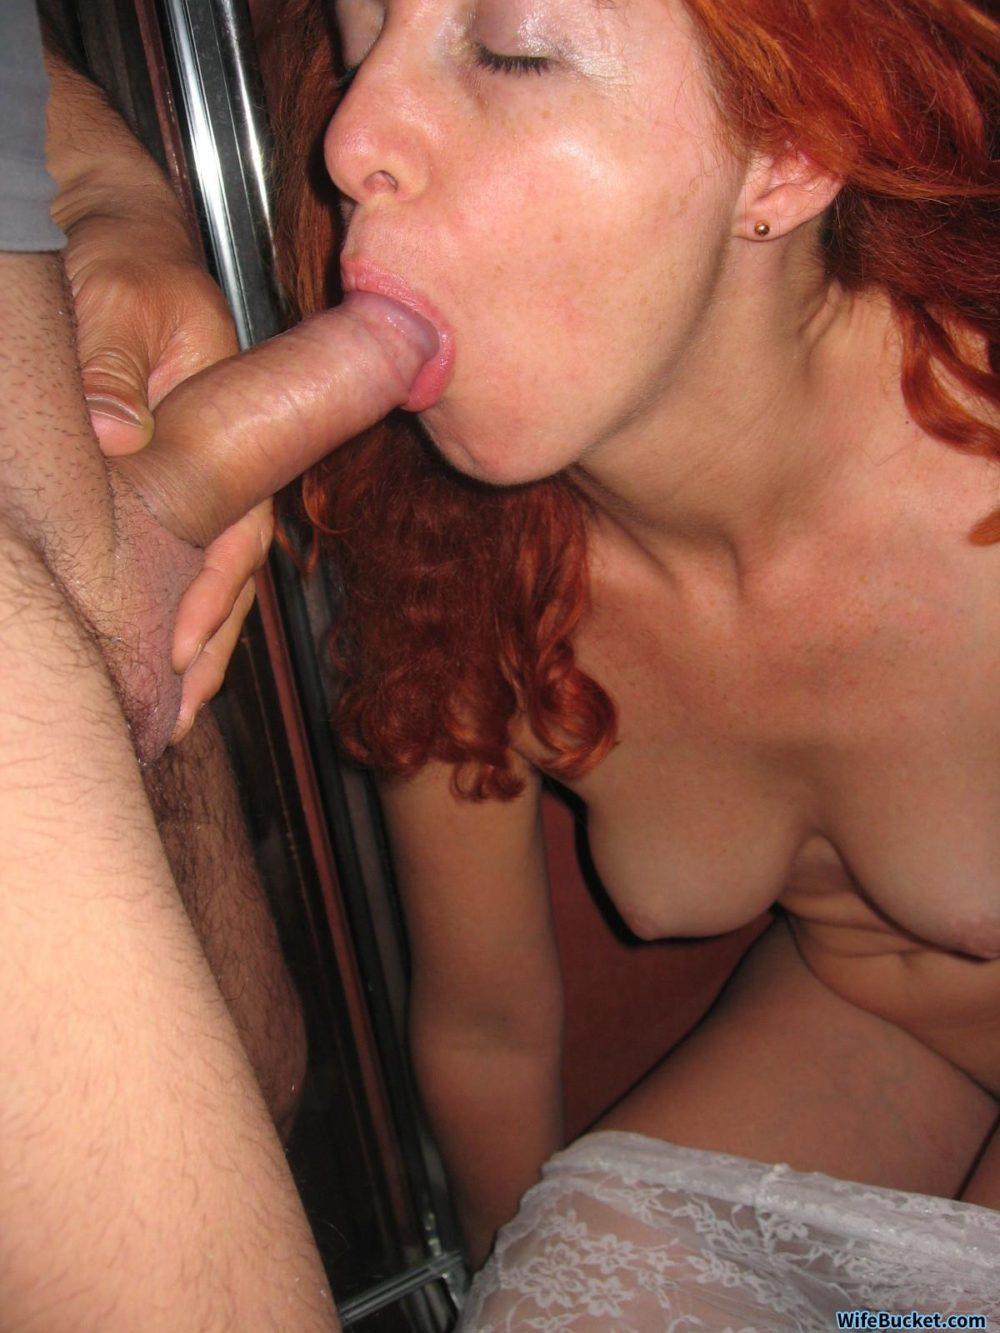 Redhead loving giving head